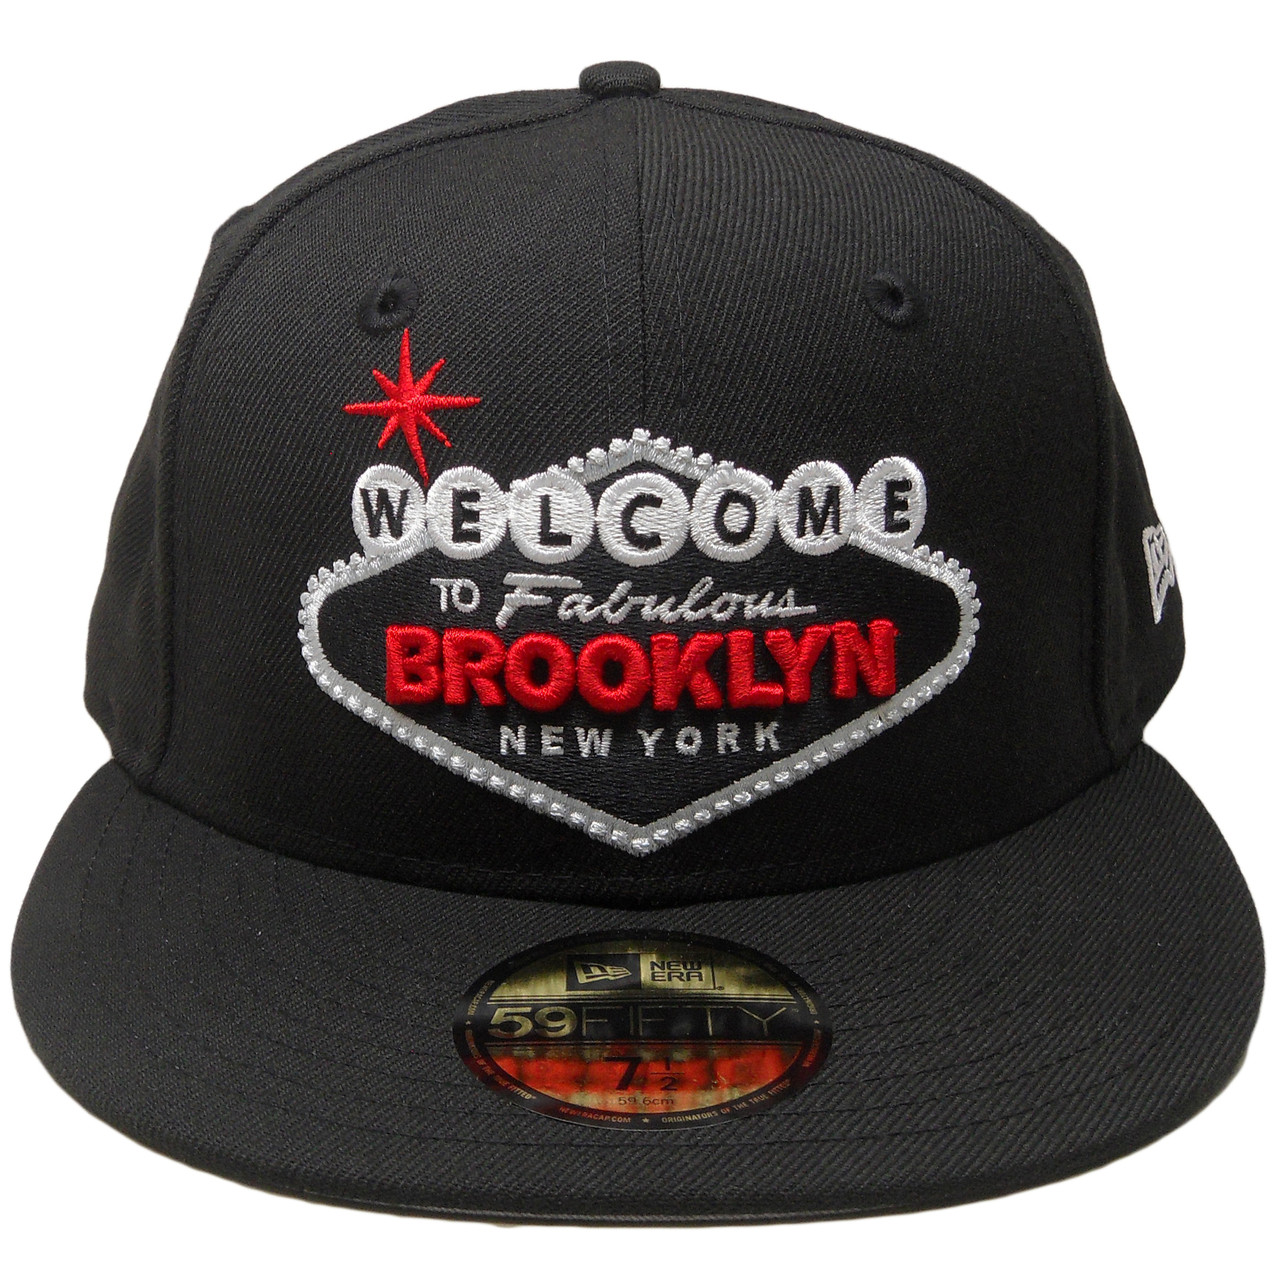 Welcome to Fabulous Brooklyn New Era 59Fifty Fitted Hat - Black 28ae9efe0bf4